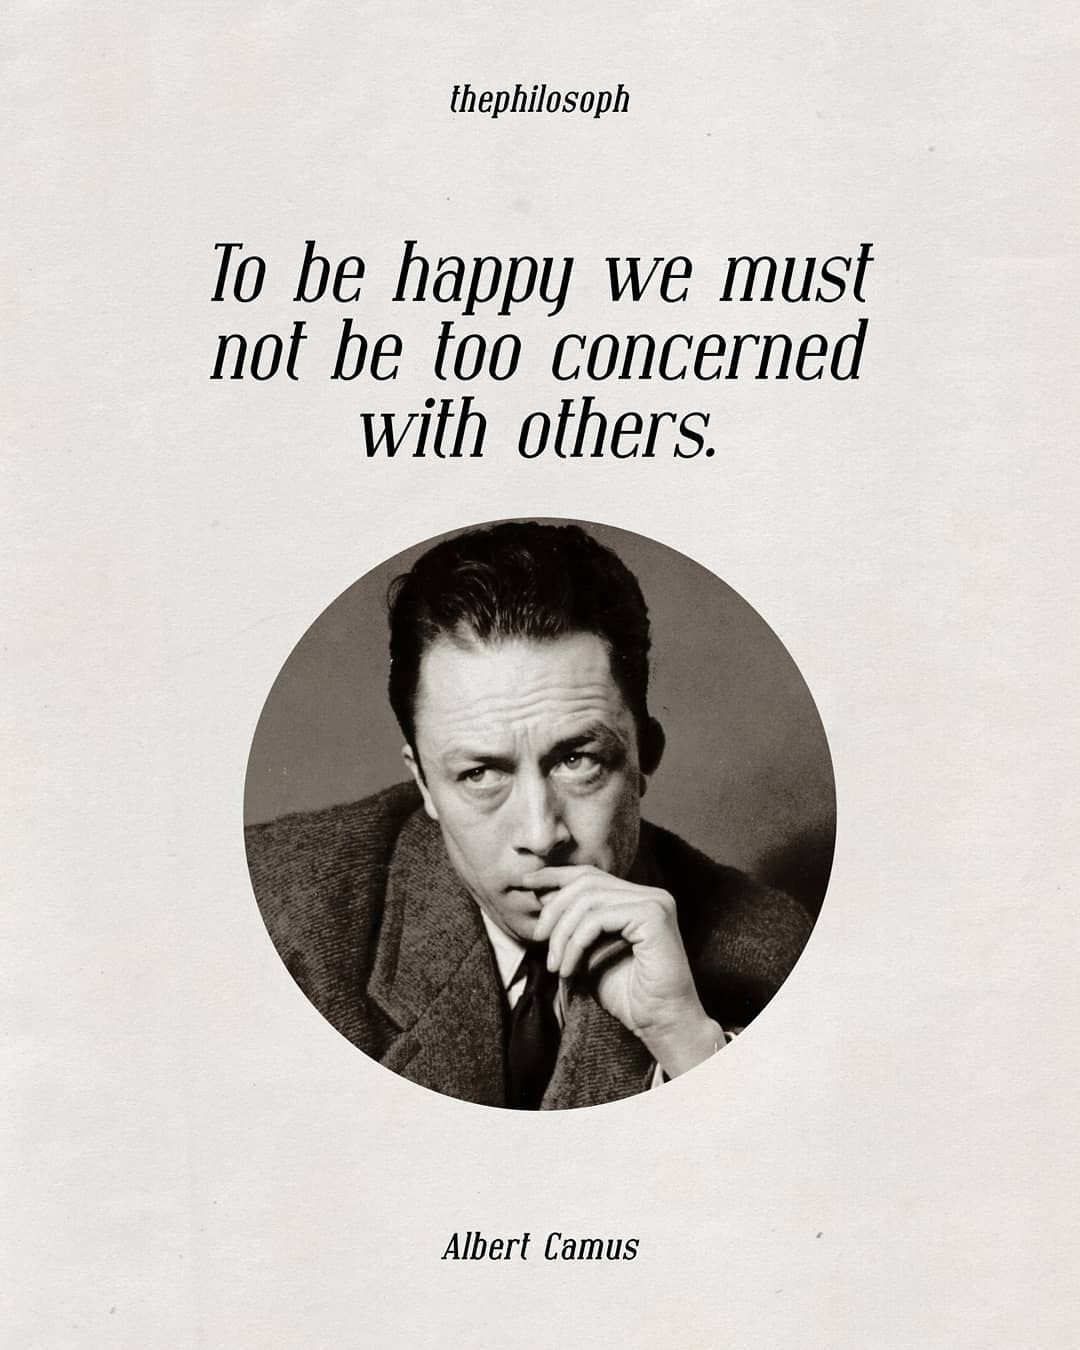 Philosophy Literature On Instagram What S Your Opinion To Be Happy We Must Not Be Too Concerned With Others Happy We Albert Camus Literature